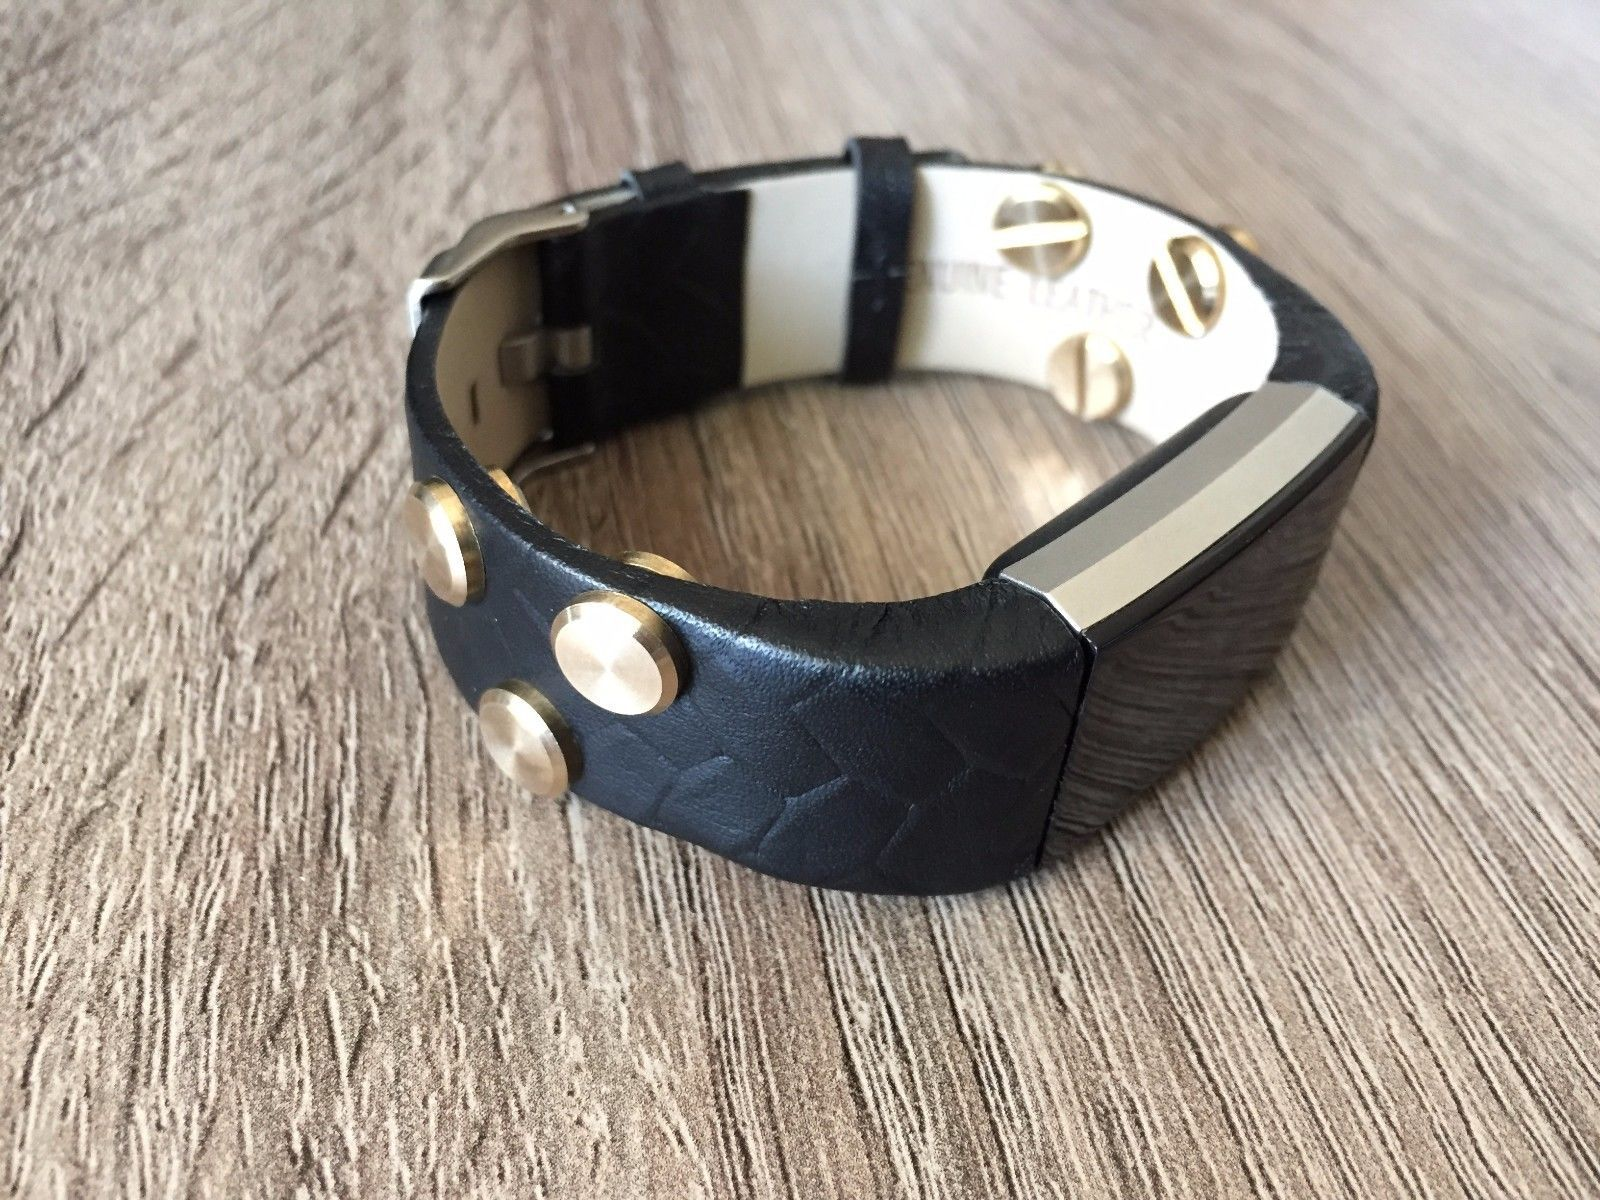 Handmade vintage black leather band with gold rivets for fitbit